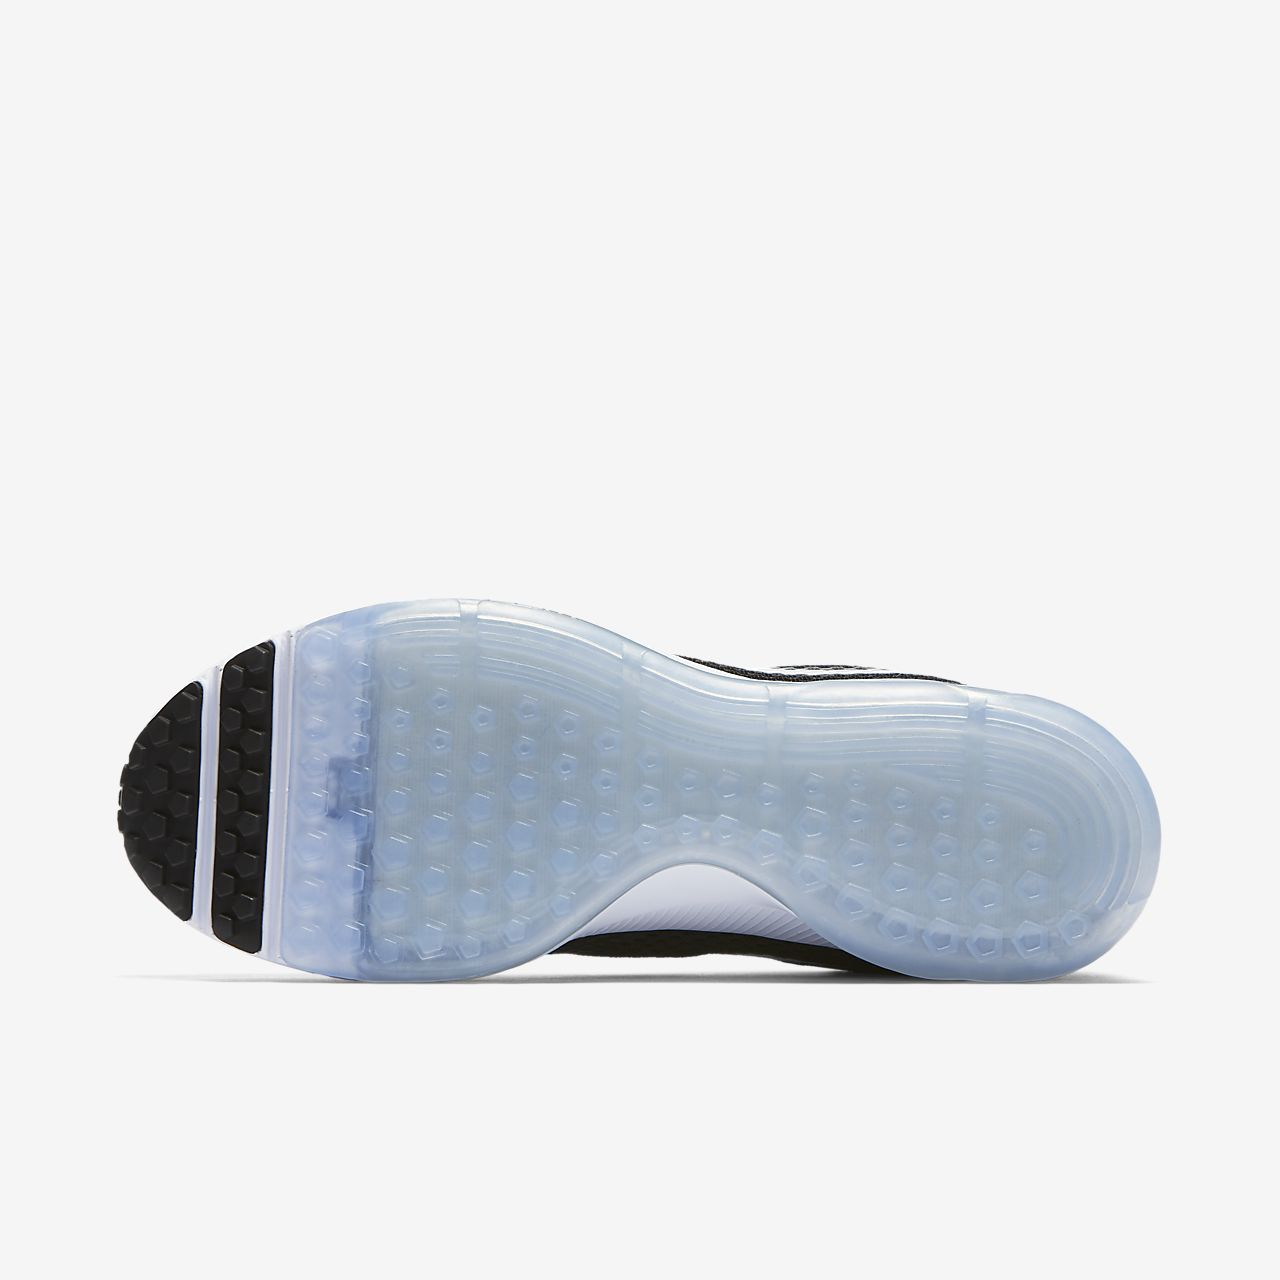 new concept 098c1 7a731 Nike Zoom All Out Low 2 Women's Running Shoe